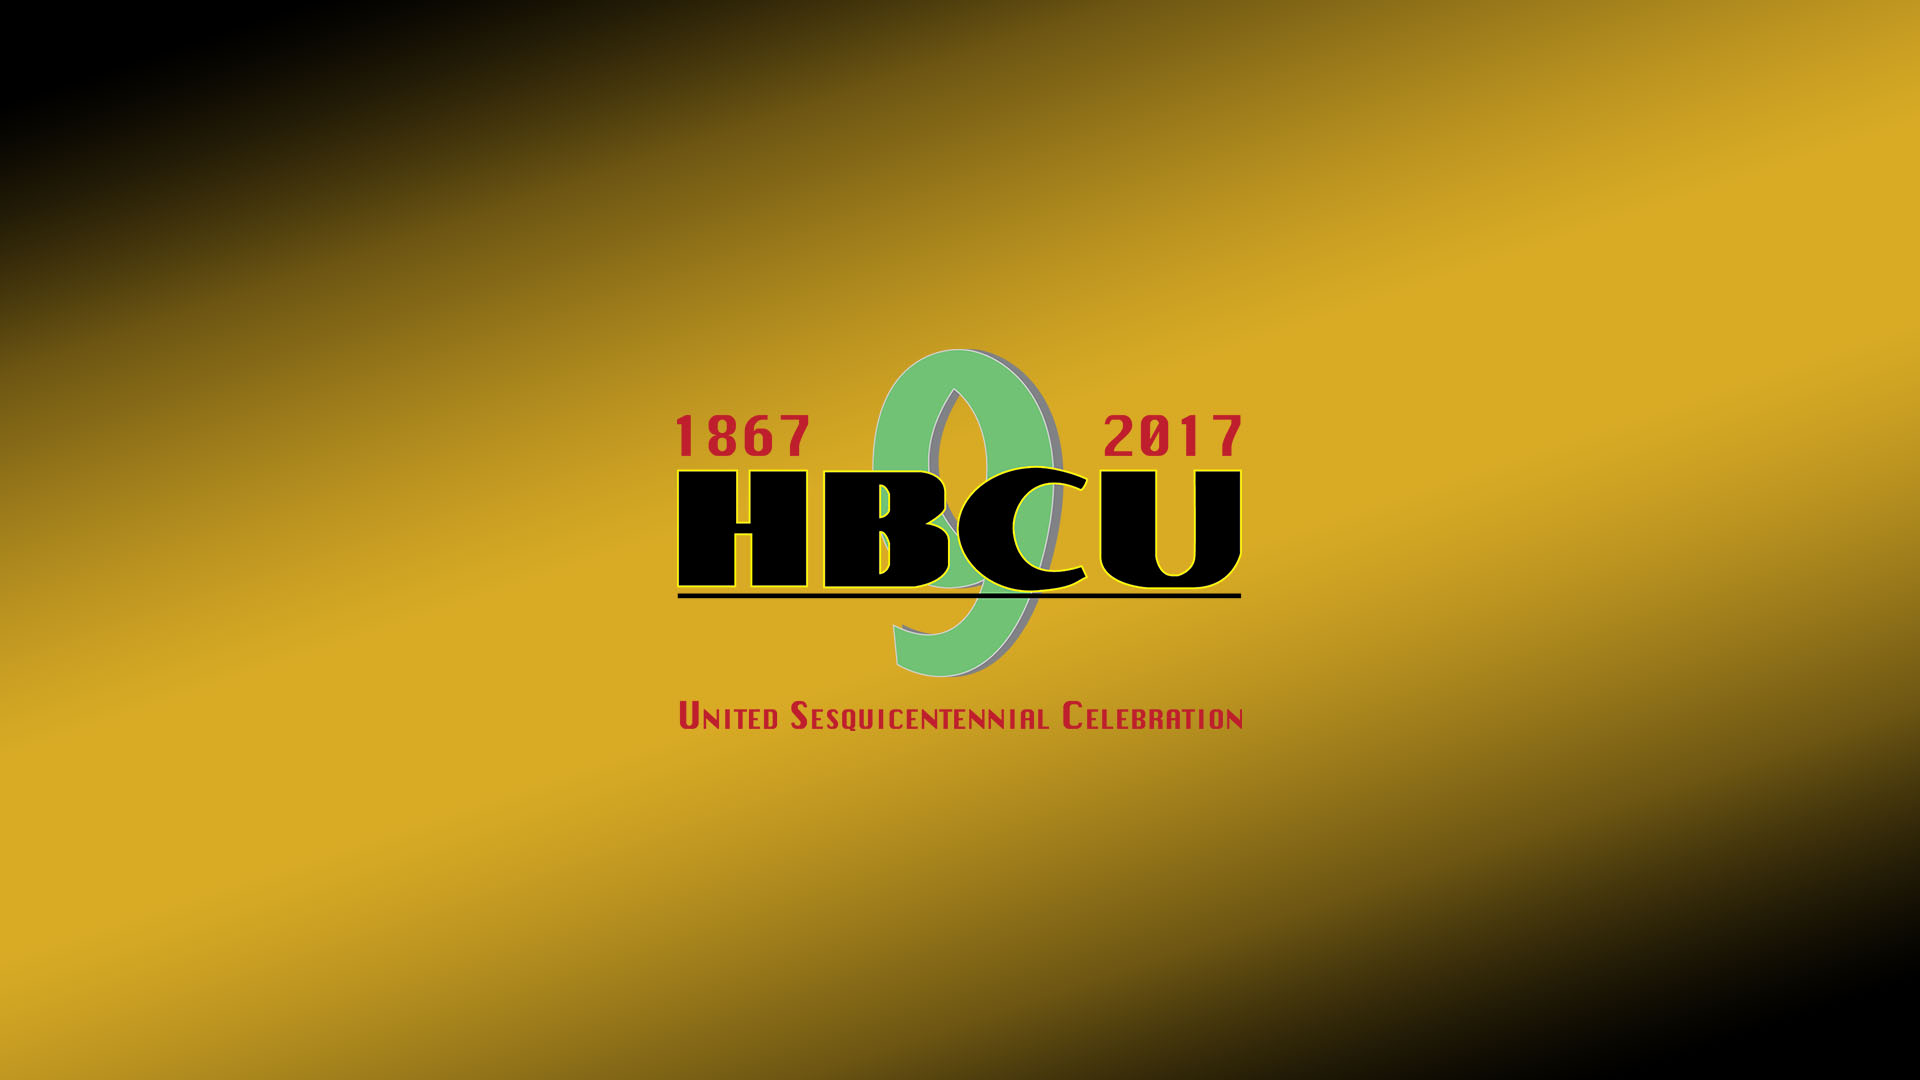 The HBCU 9 United Sesquicentennial Celebration 1920x1080